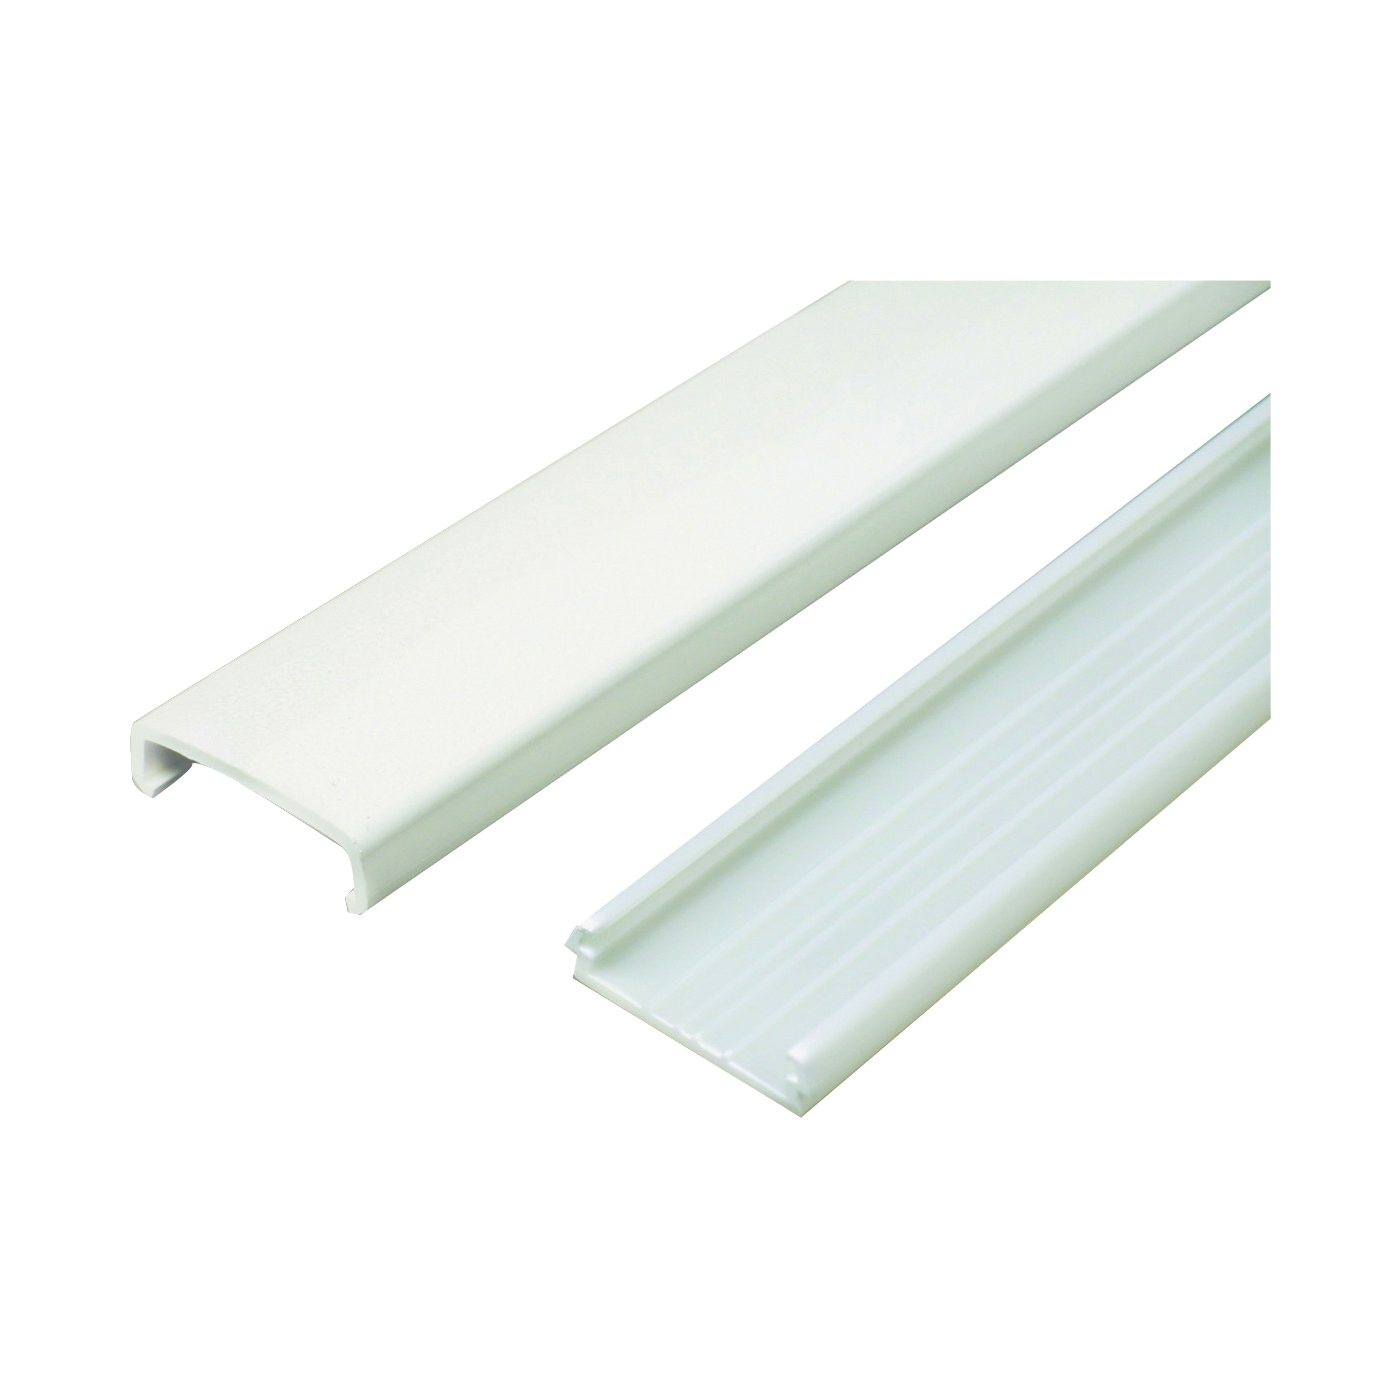 Picture of Legrand Wiremold NMW Series NM1 Raceway Wire Channel, 60 in L, 1-5/16 in W, 1-Channel, Plastic, Ivory